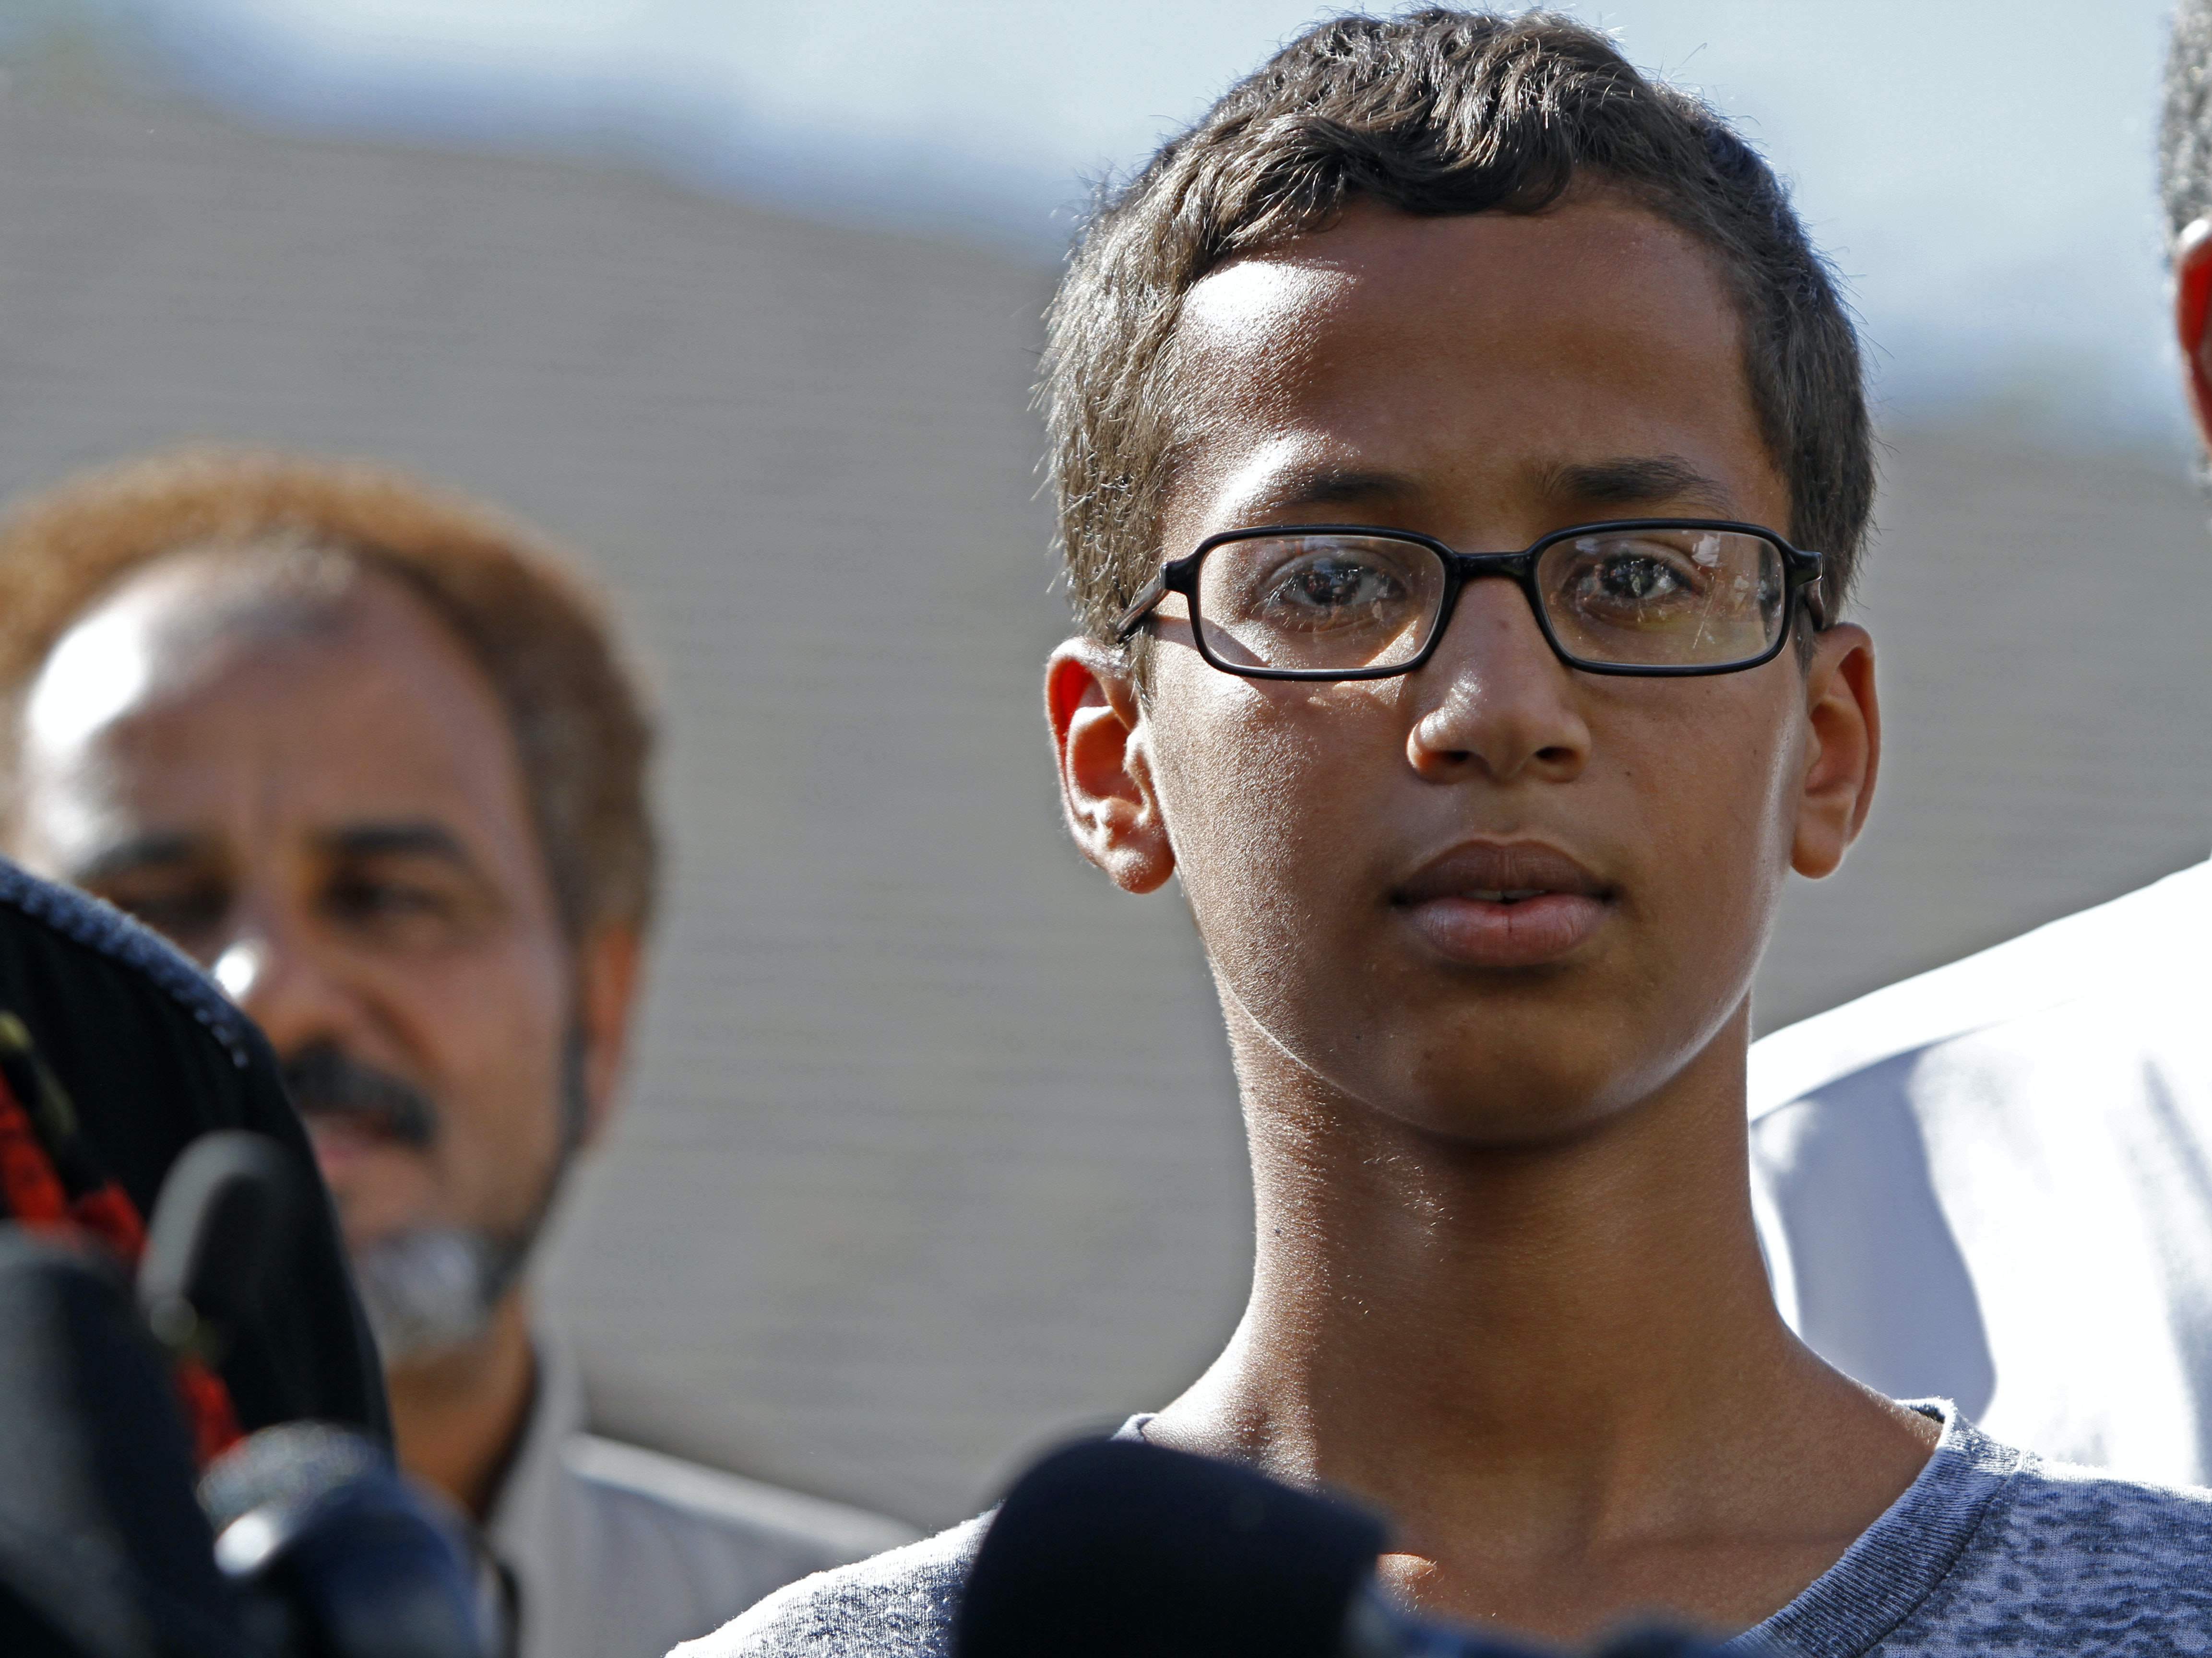 """Clock Boy"" Ahmed Mohamed's Entire World Changed One Year Ago"